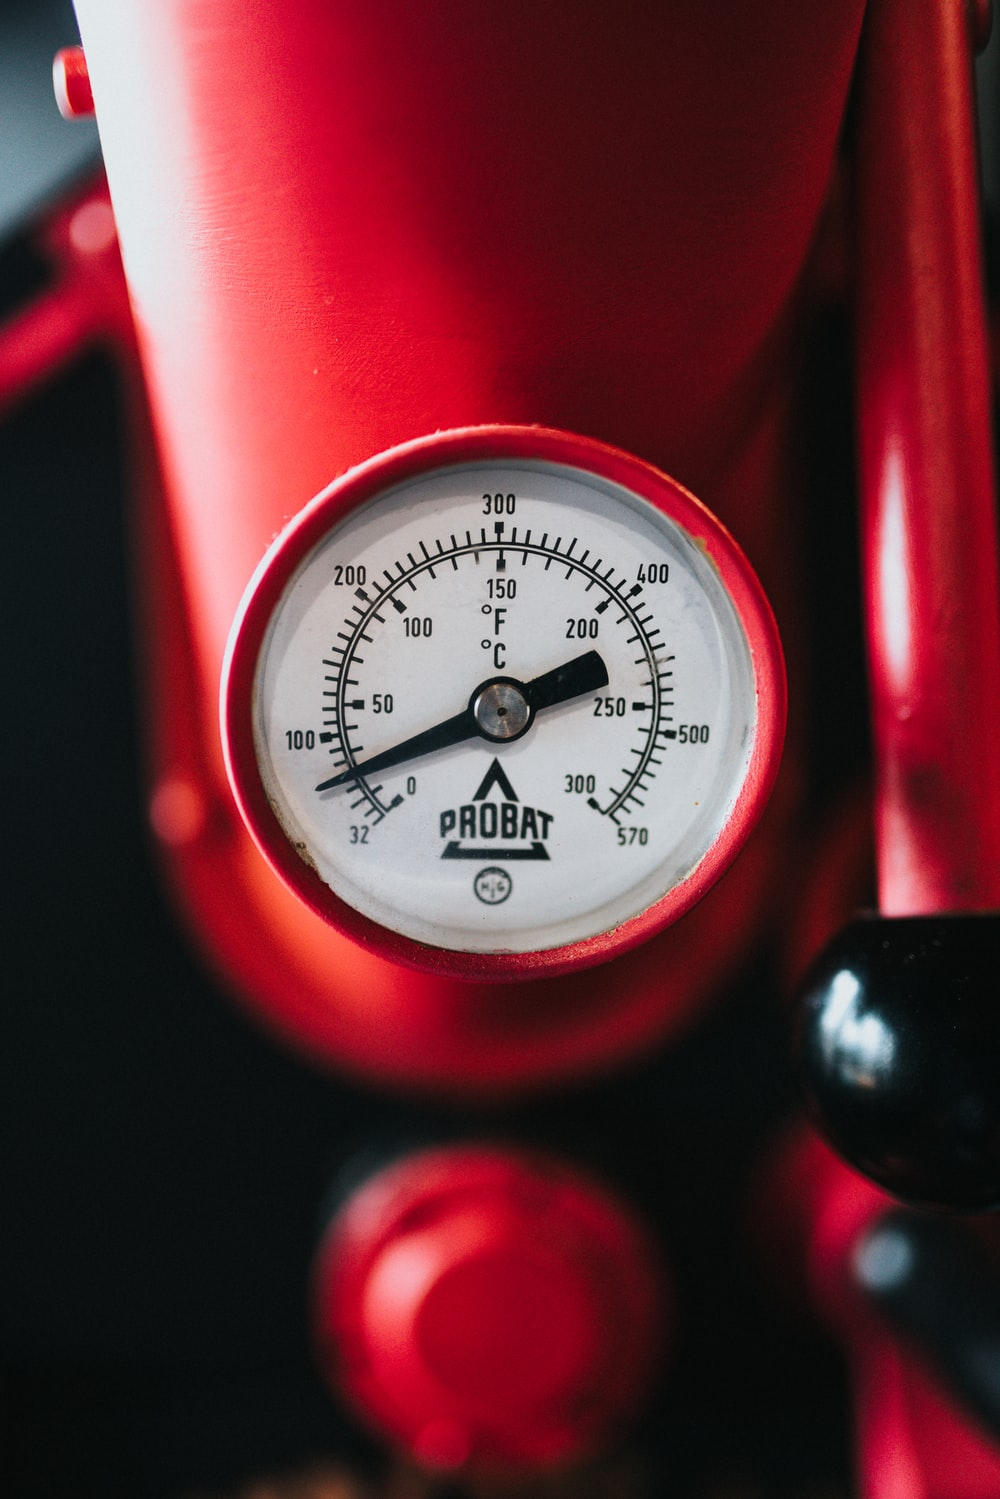 red and white gauge at 200